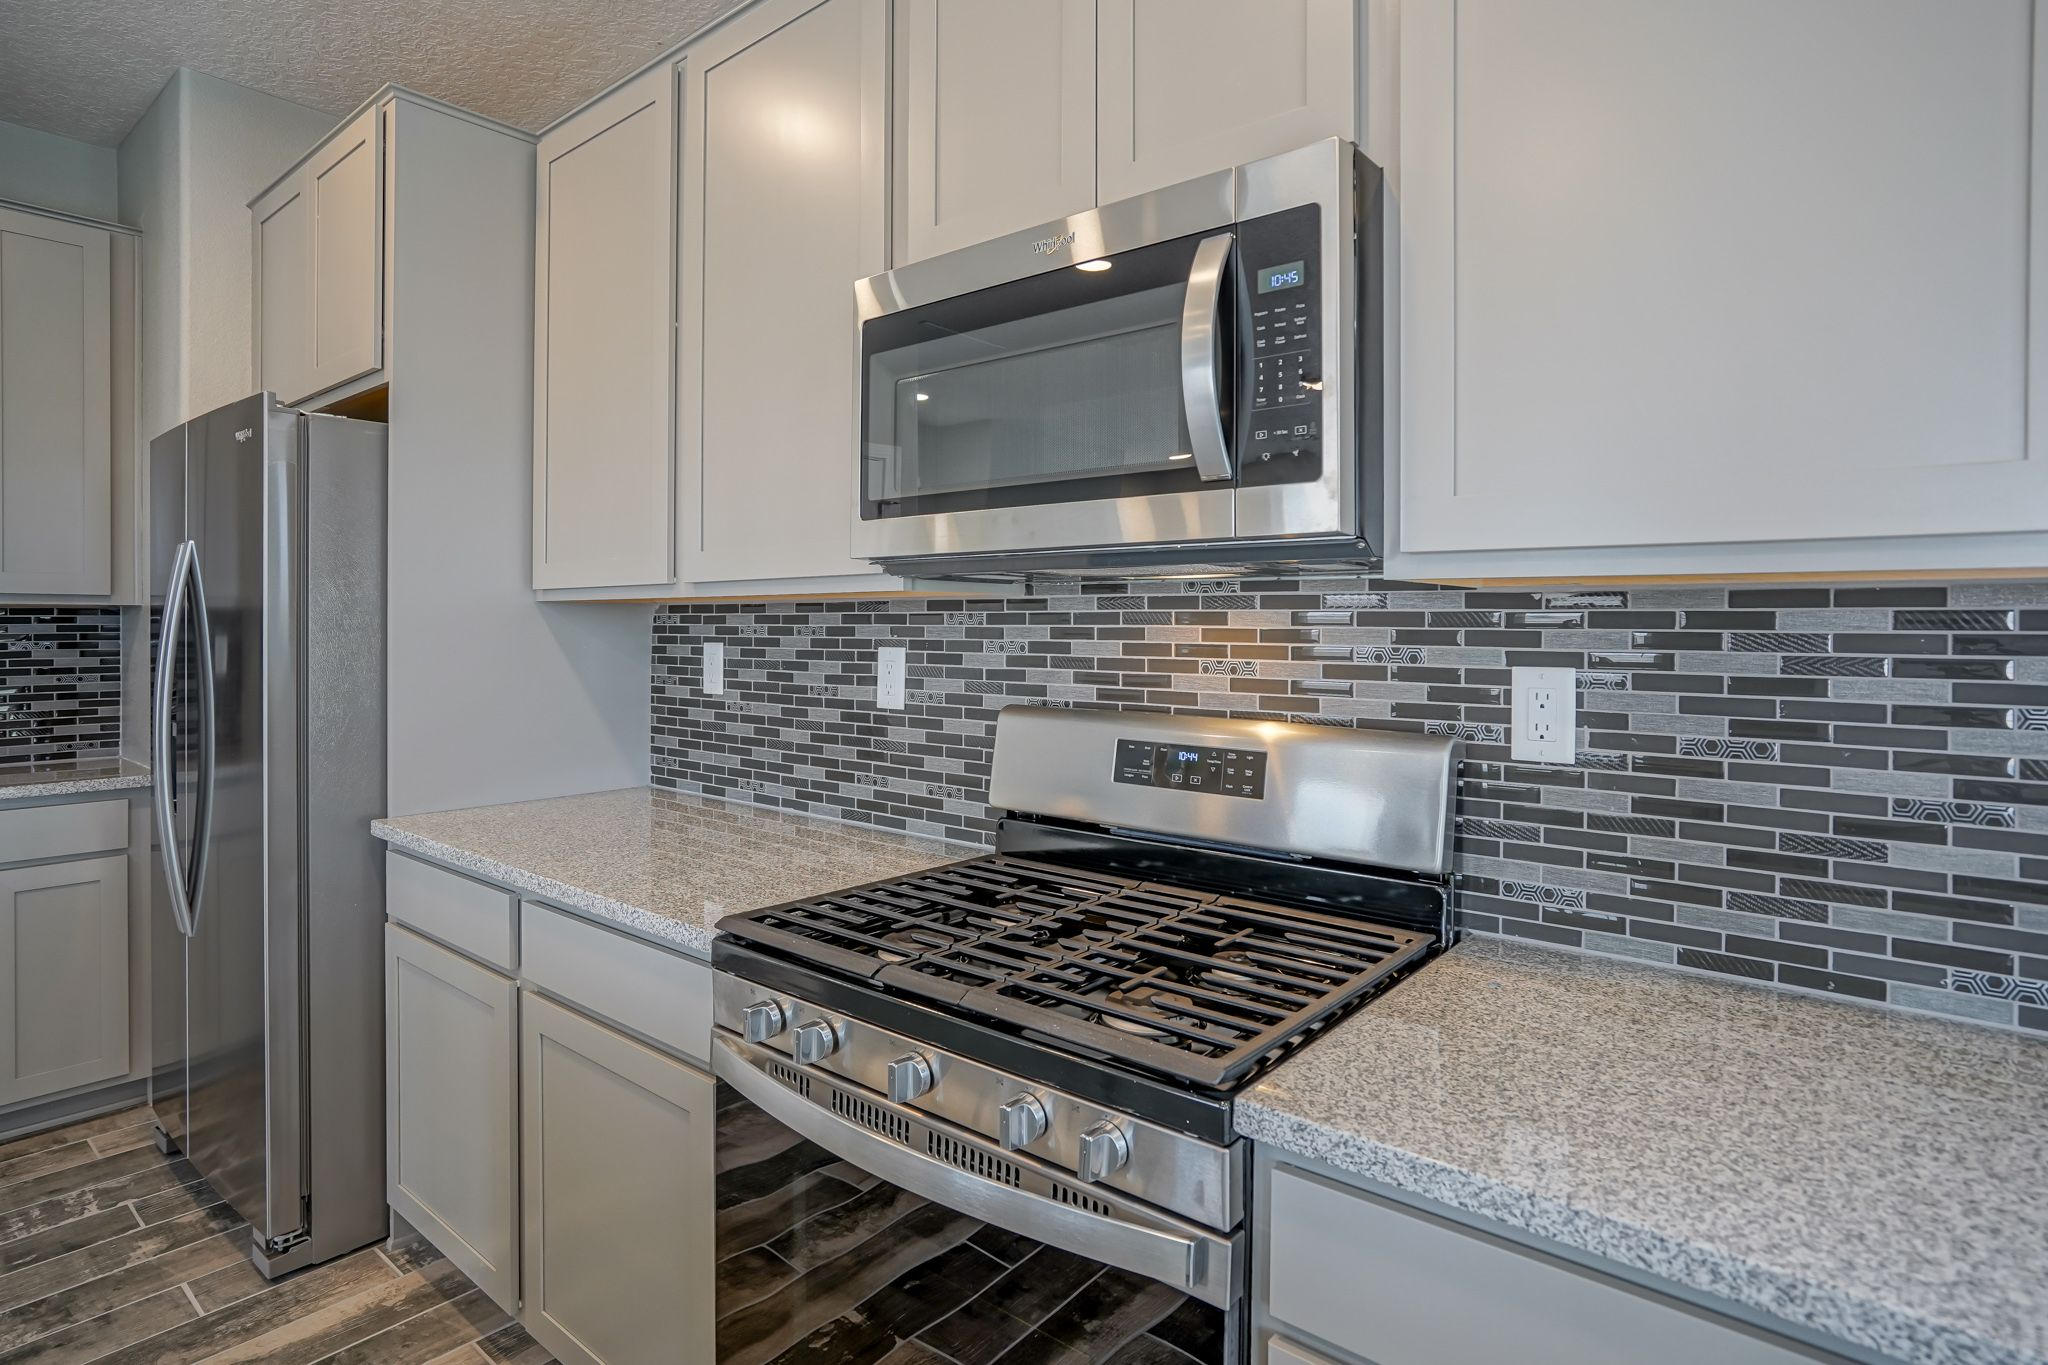 Kitchen featured in the Loreto By Abrazo Homes in Albuquerque, NM